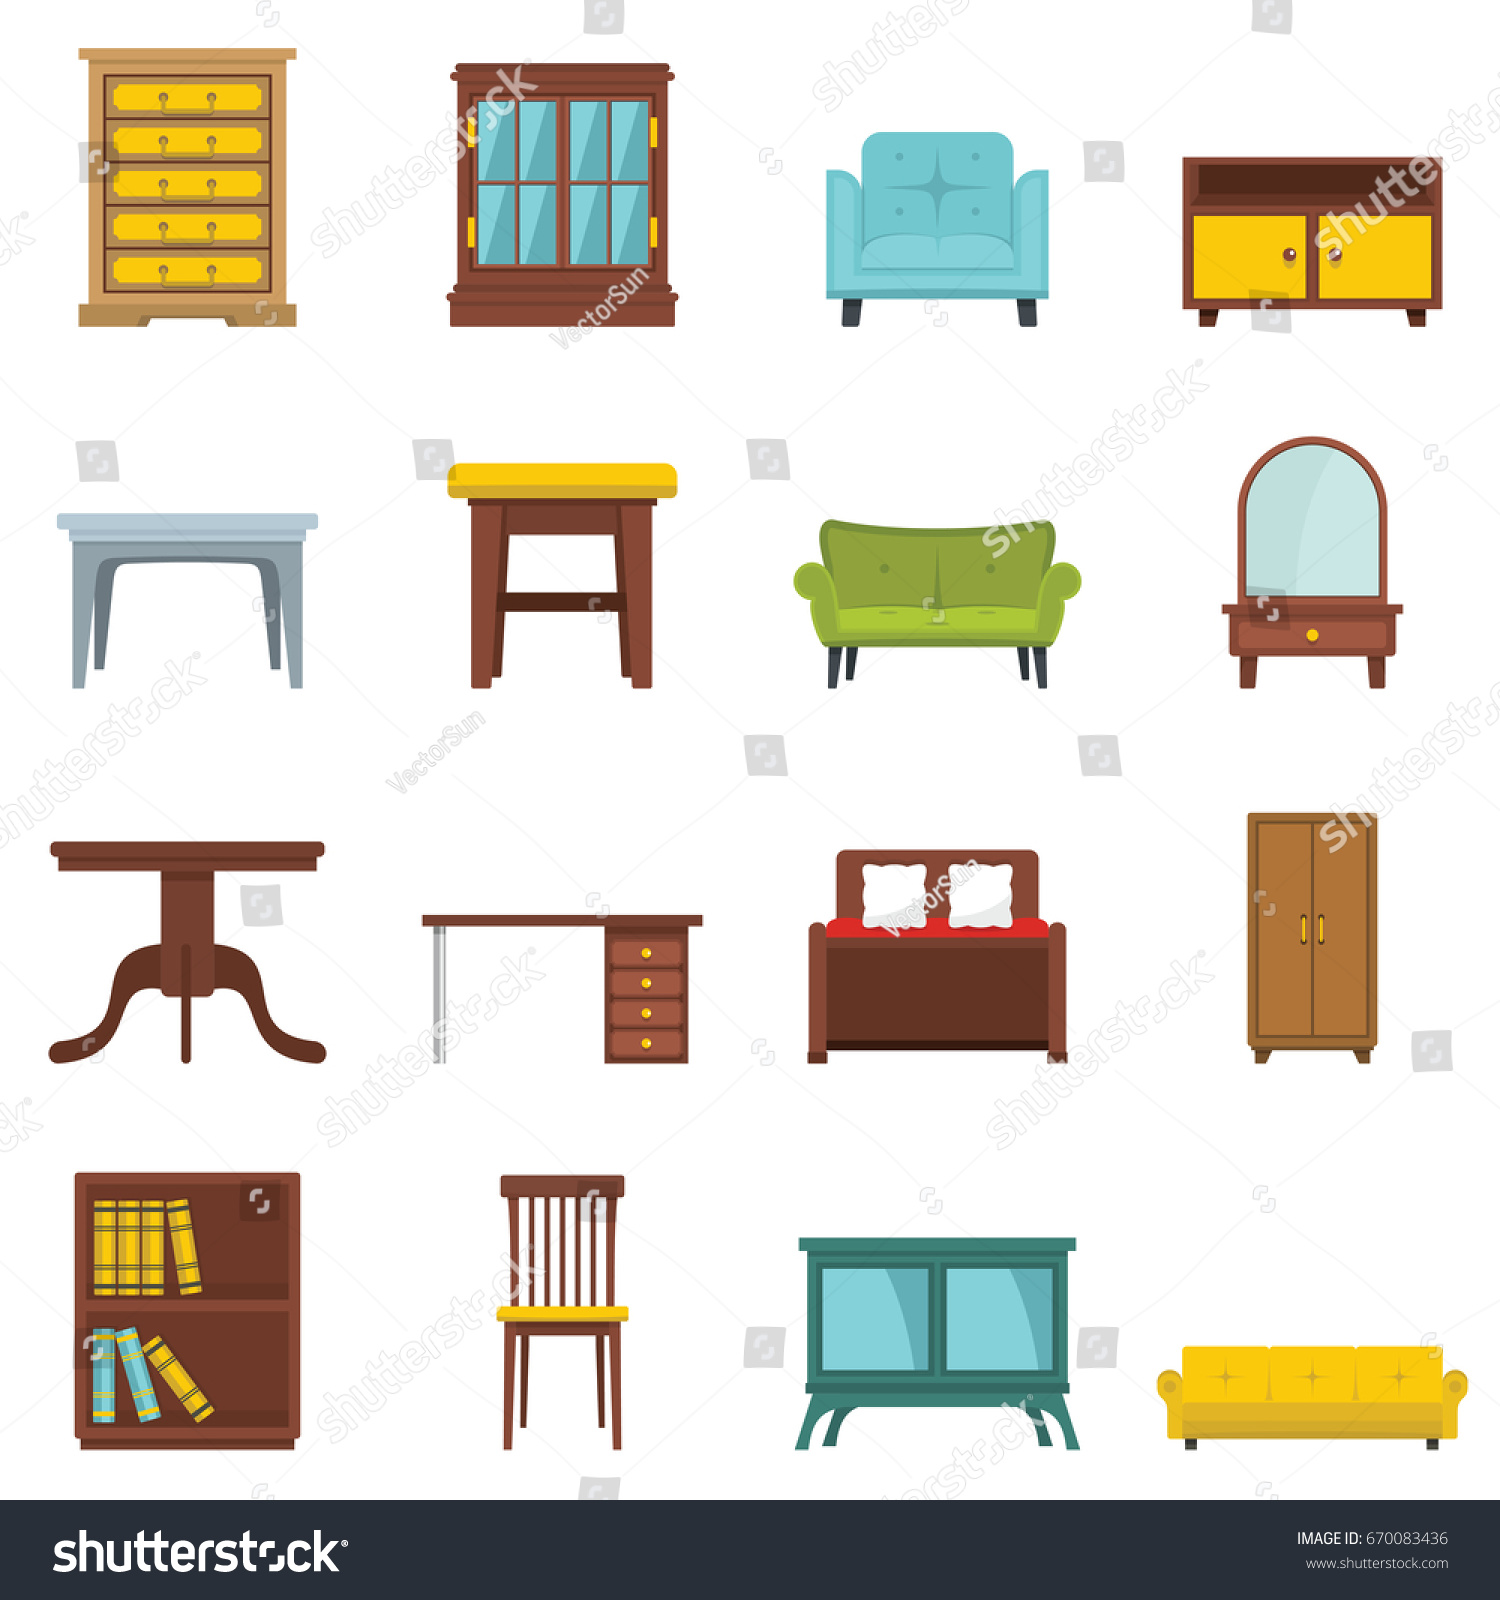 Set Flat Cartoon Office House Furniture Stock Illustration 670083436 ...